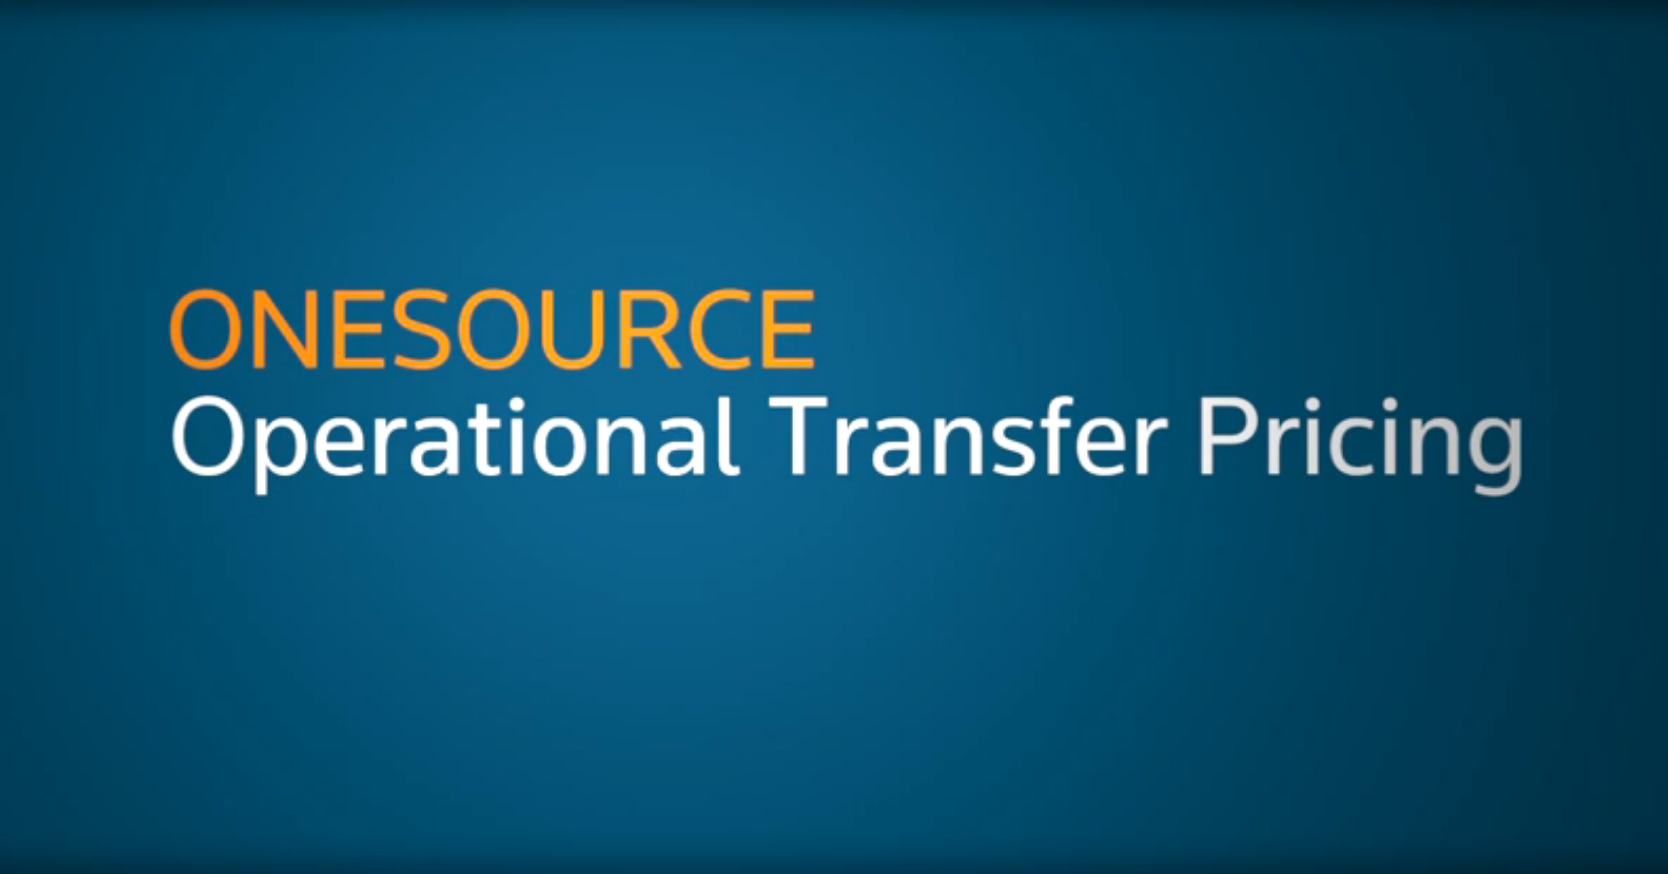 Operational transfer pricing